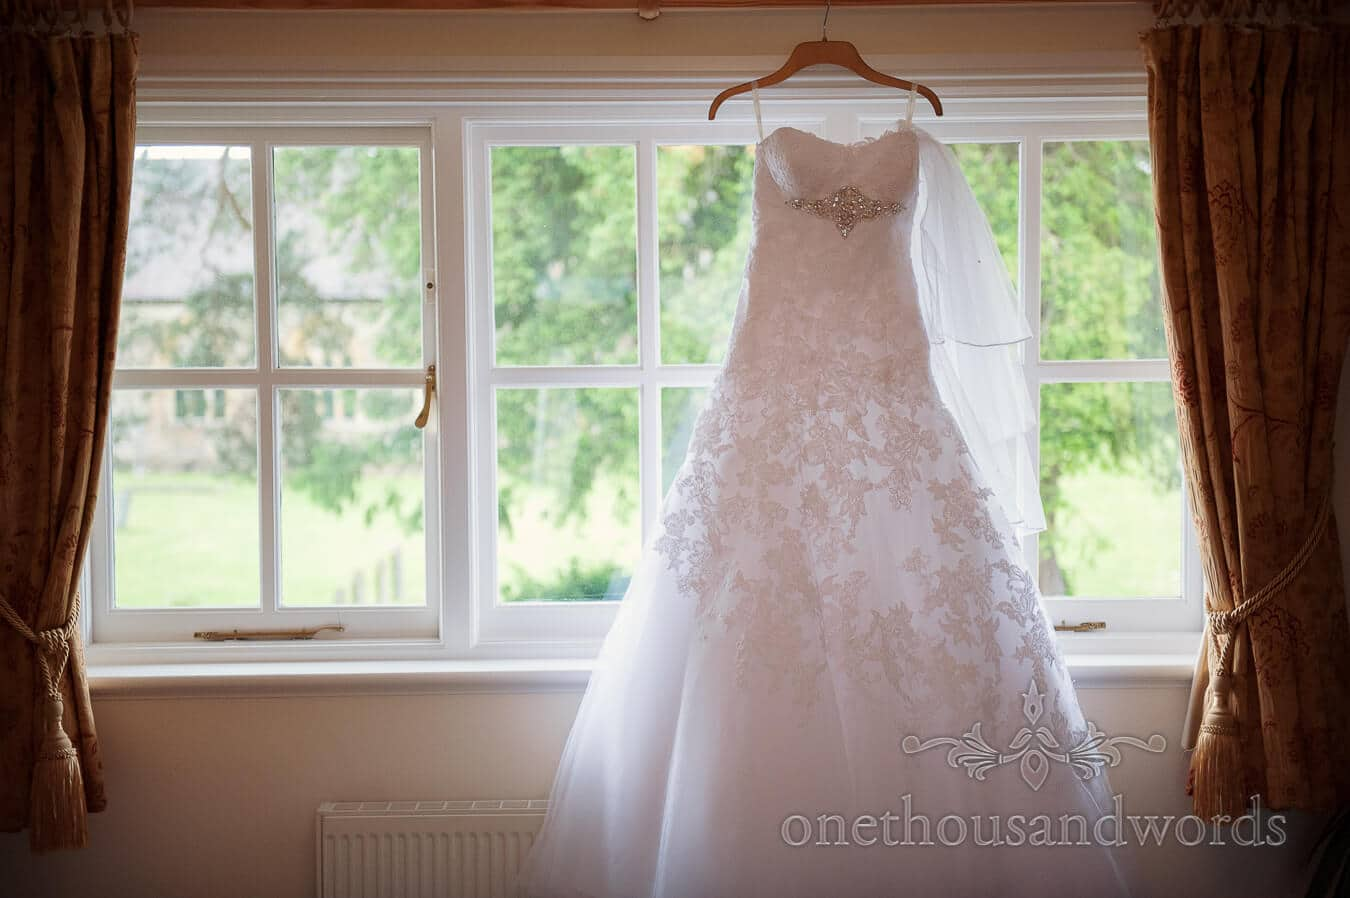 Backlit wedding dress hangs in window at Country Theme Wedding